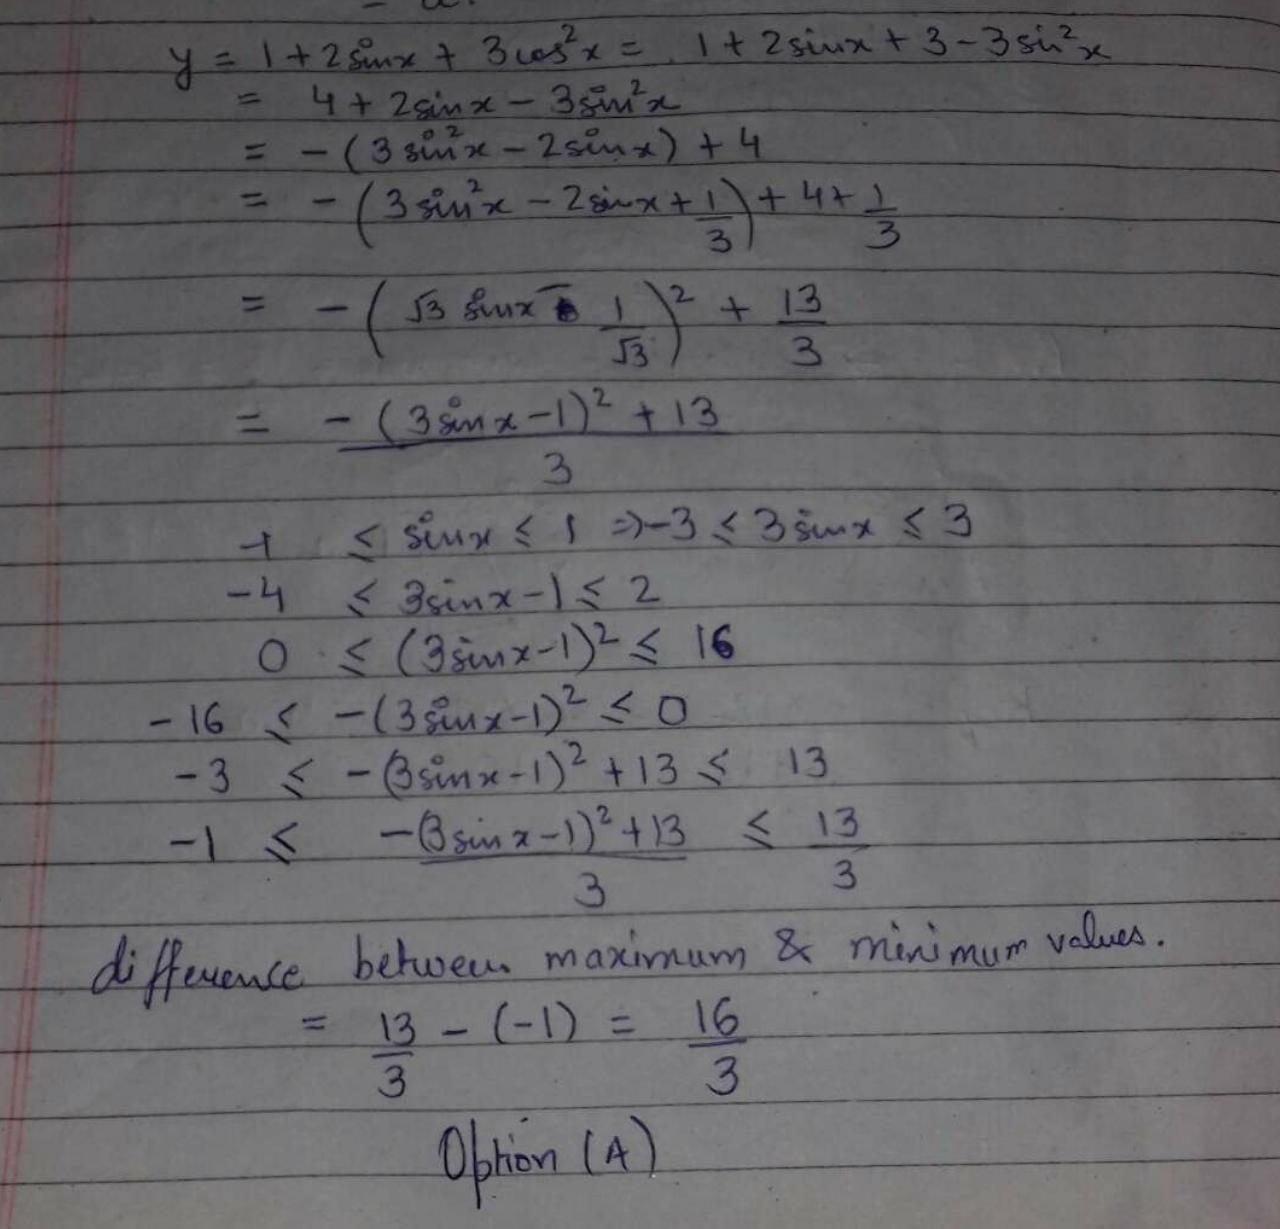 The difference between maximum and minimum value of the expression y = 1 + 2 sinx + 3 cos^2 x is